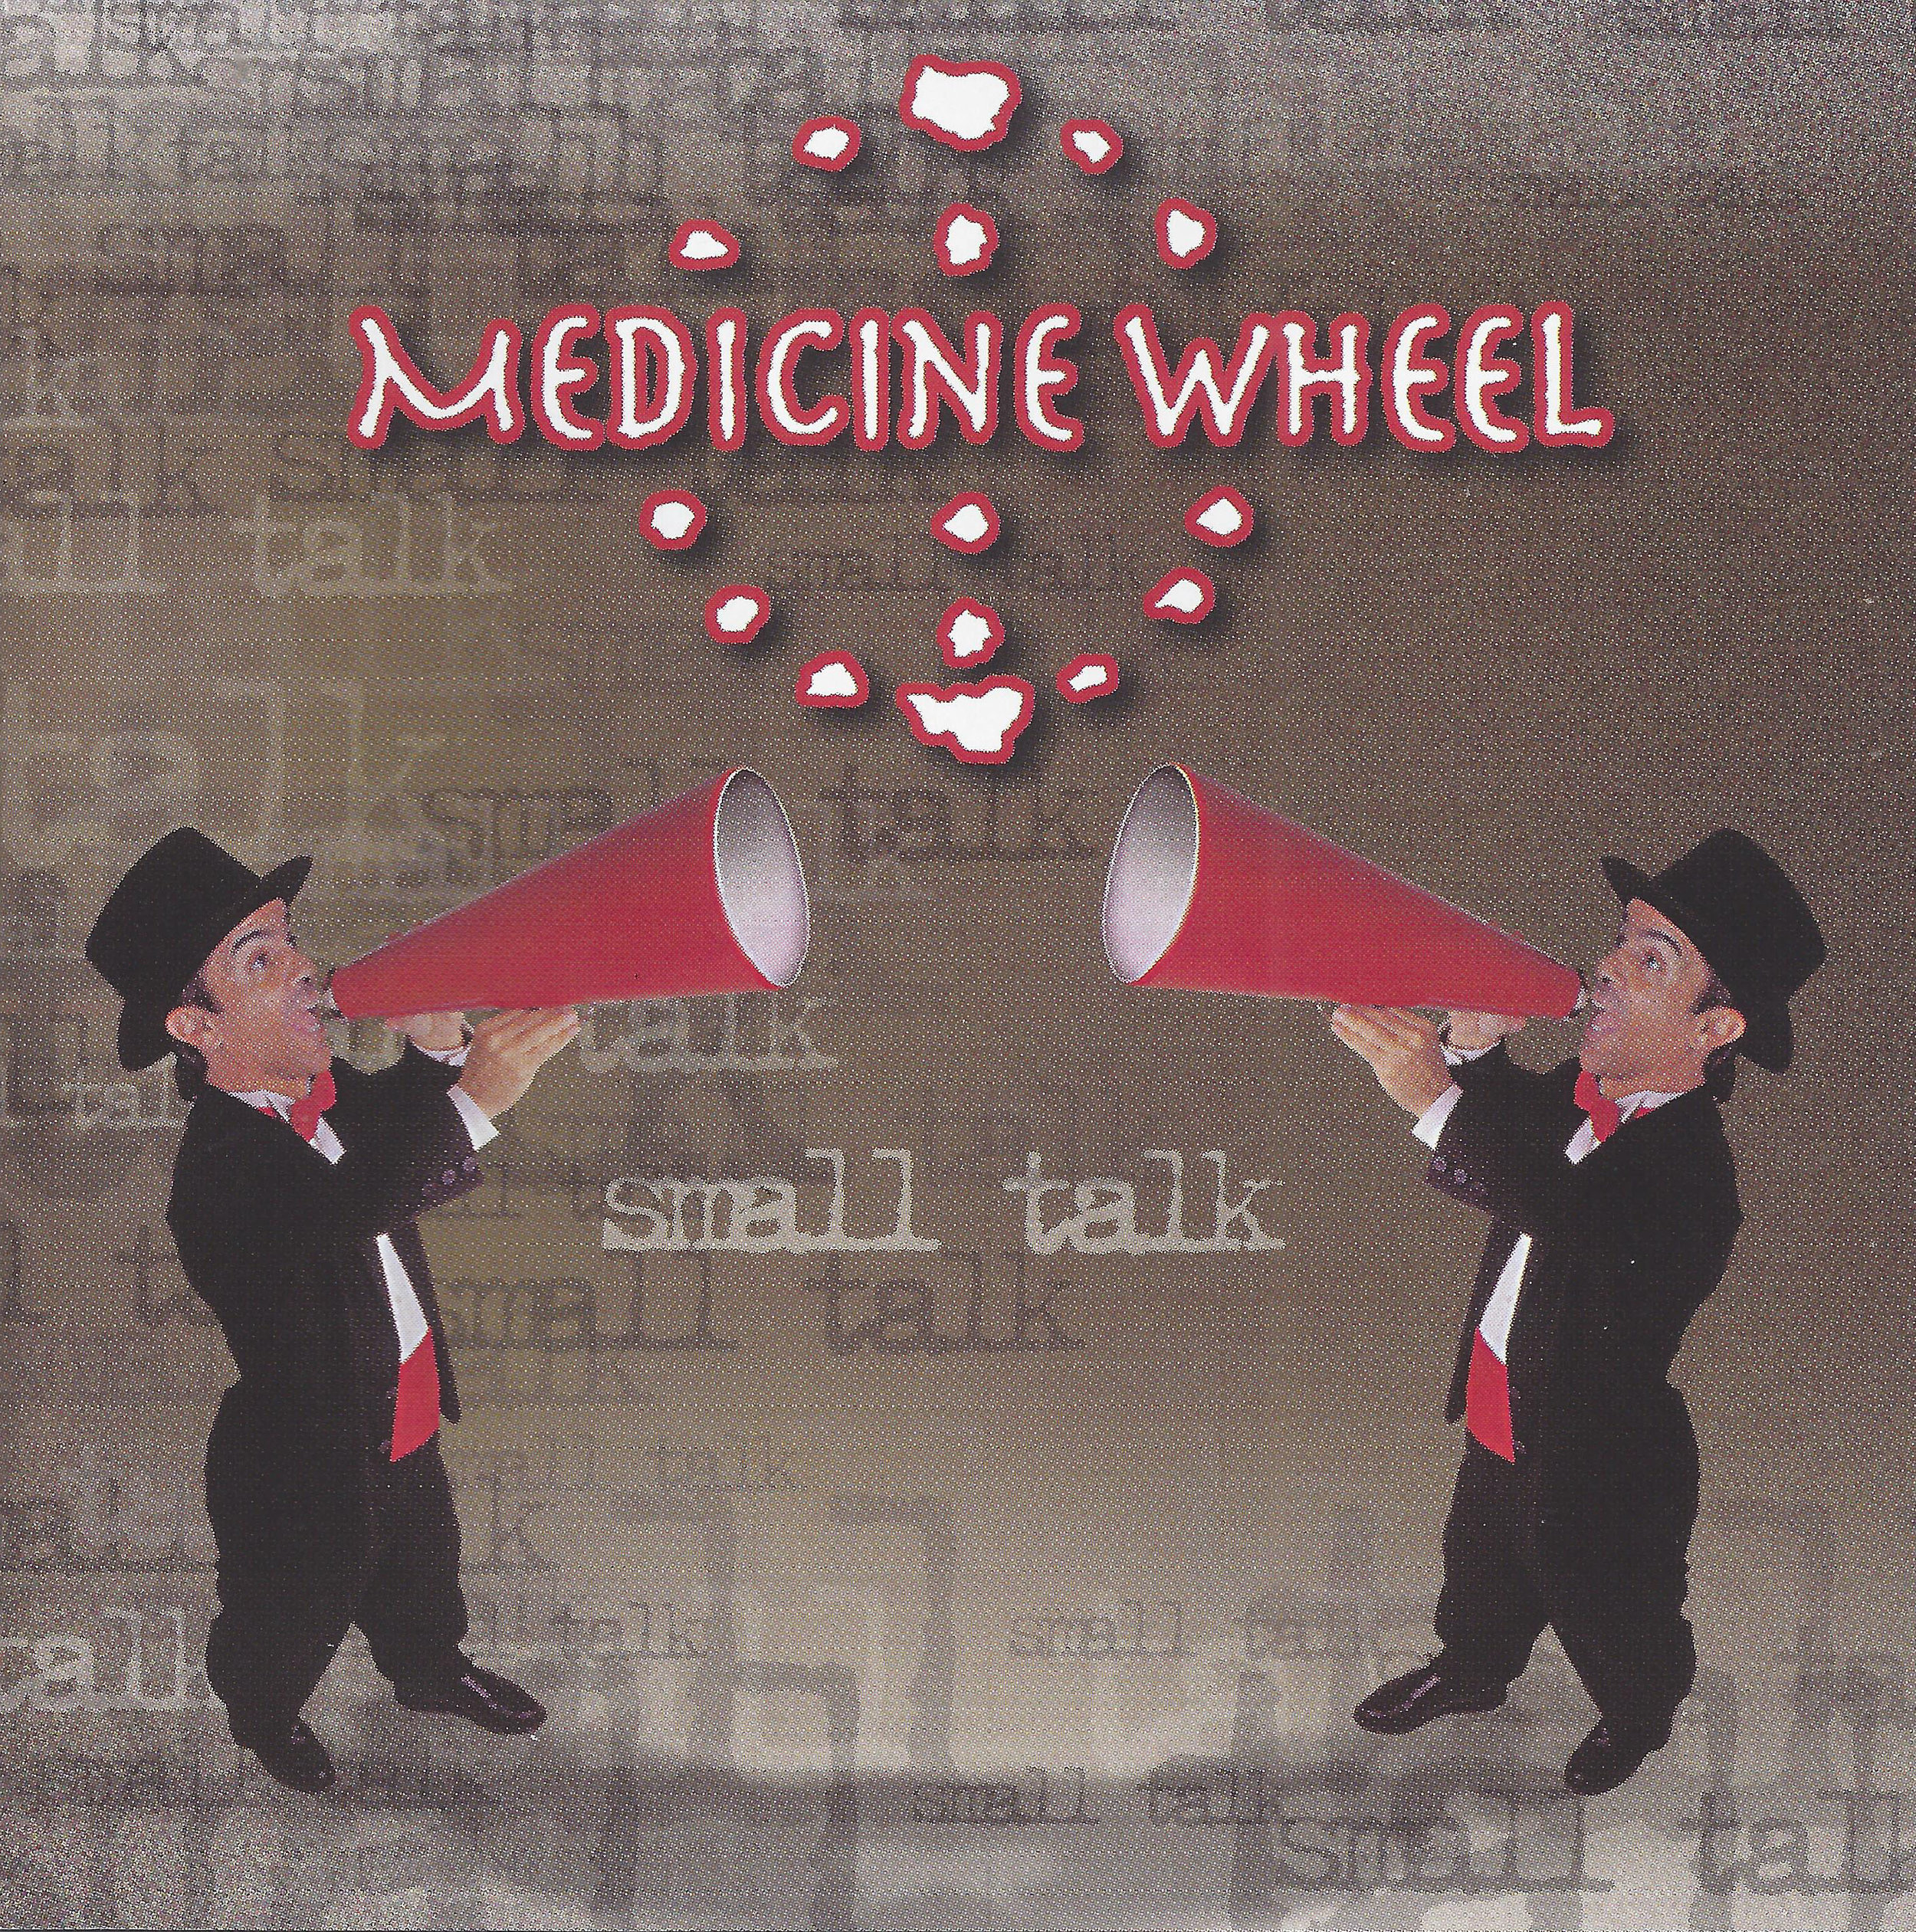 Medicine Wheel_Small Talk.jpg